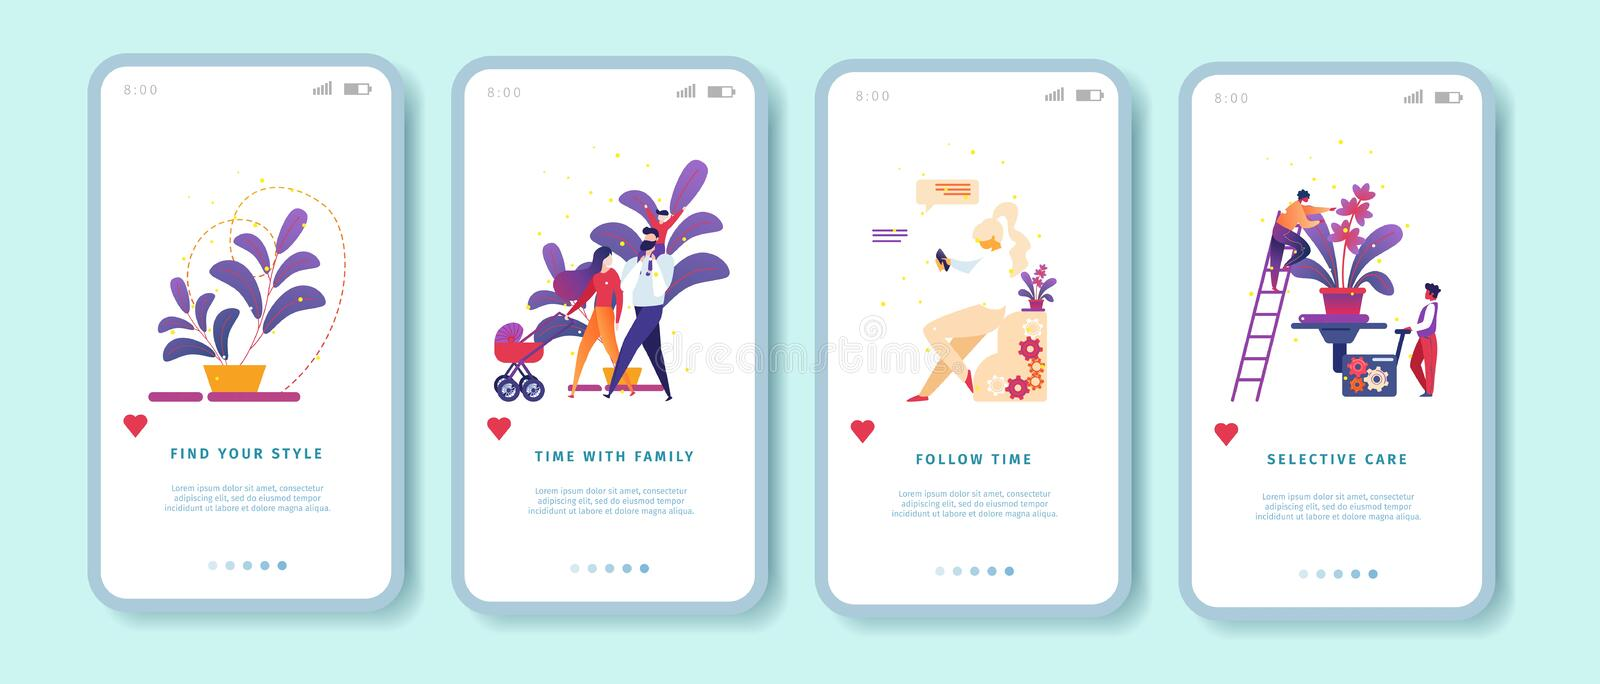 Find Style, Family, Follow Time, Selective Care. Find Your Style, Time with Family, Follow Time, Selective Care Mobile App Page Onboard Screen Set for Website stock illustration